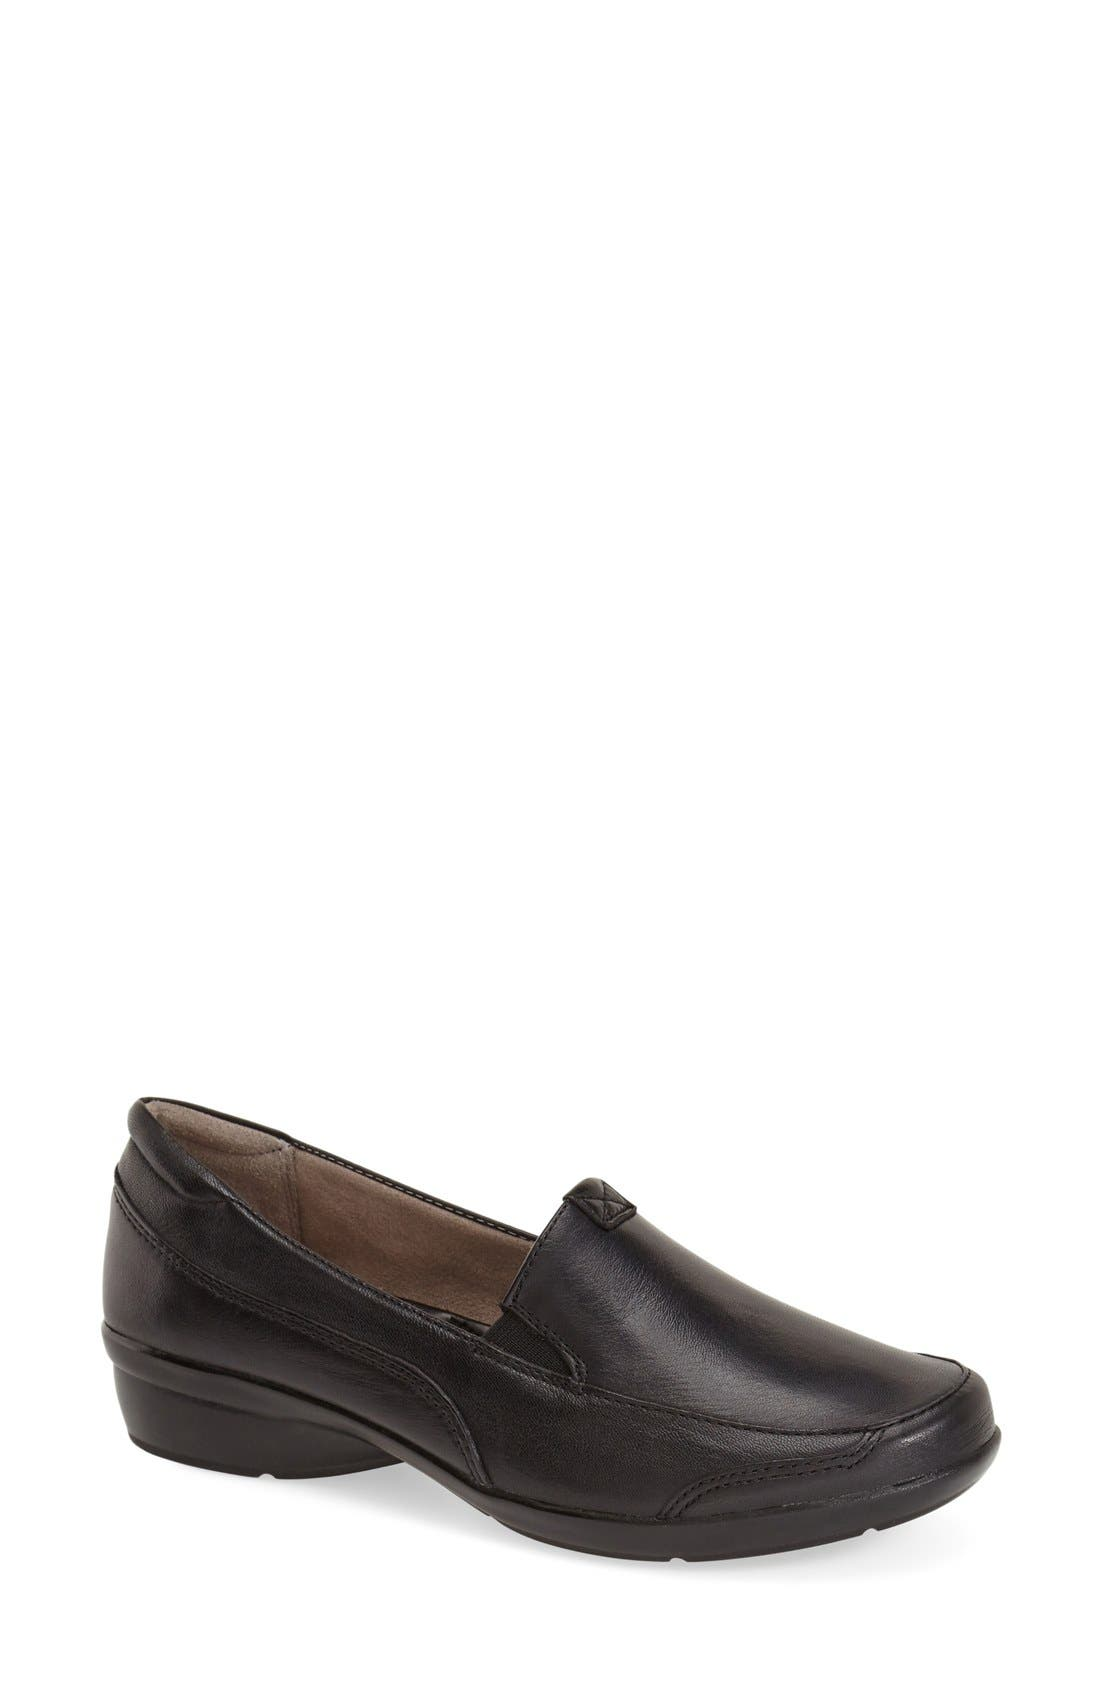 Main Image - Naturalizer 'Channing' Loafer (Women)